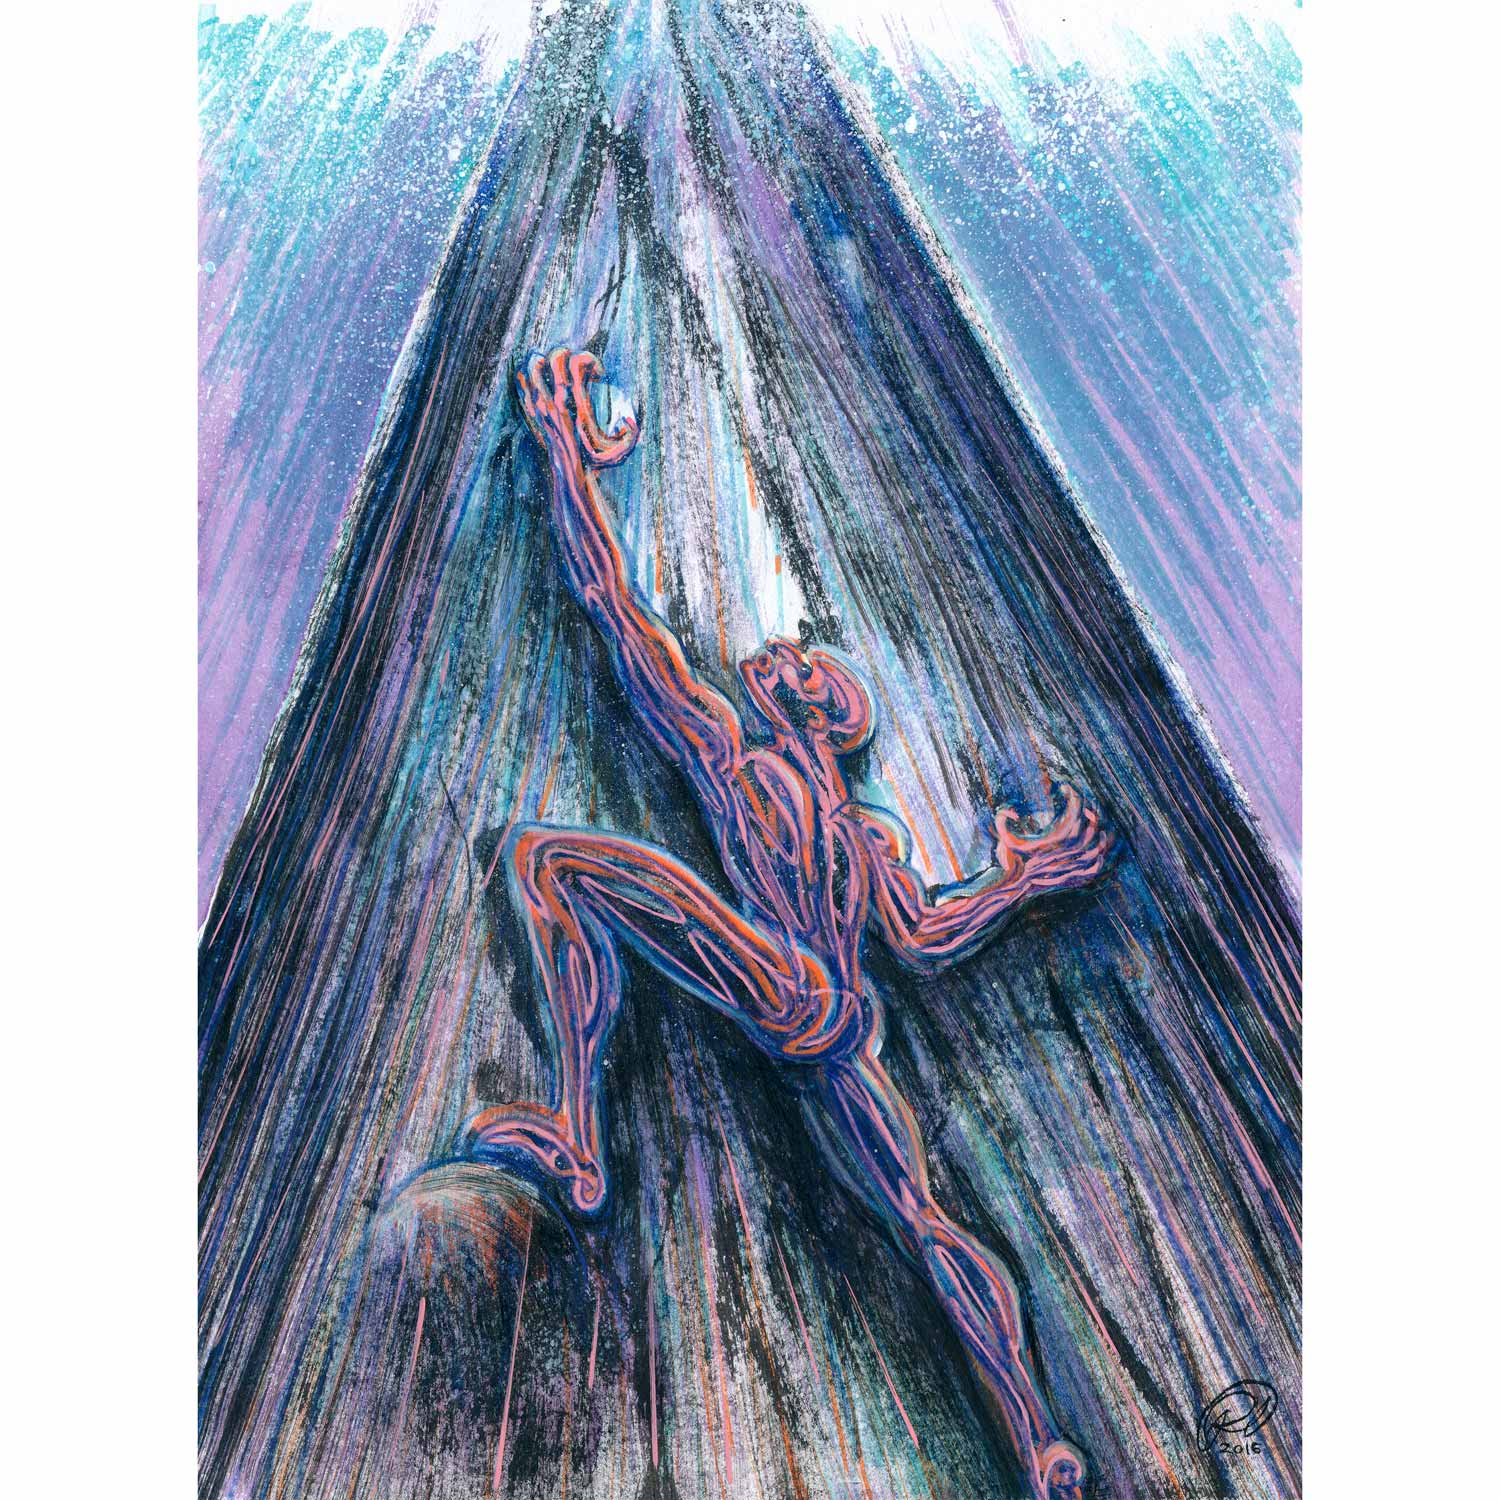 """Why Do I Keep Climbing?  2016  Colored pencil, paint marker, and ink on cotton rag paper  11"""" x 15"""""""